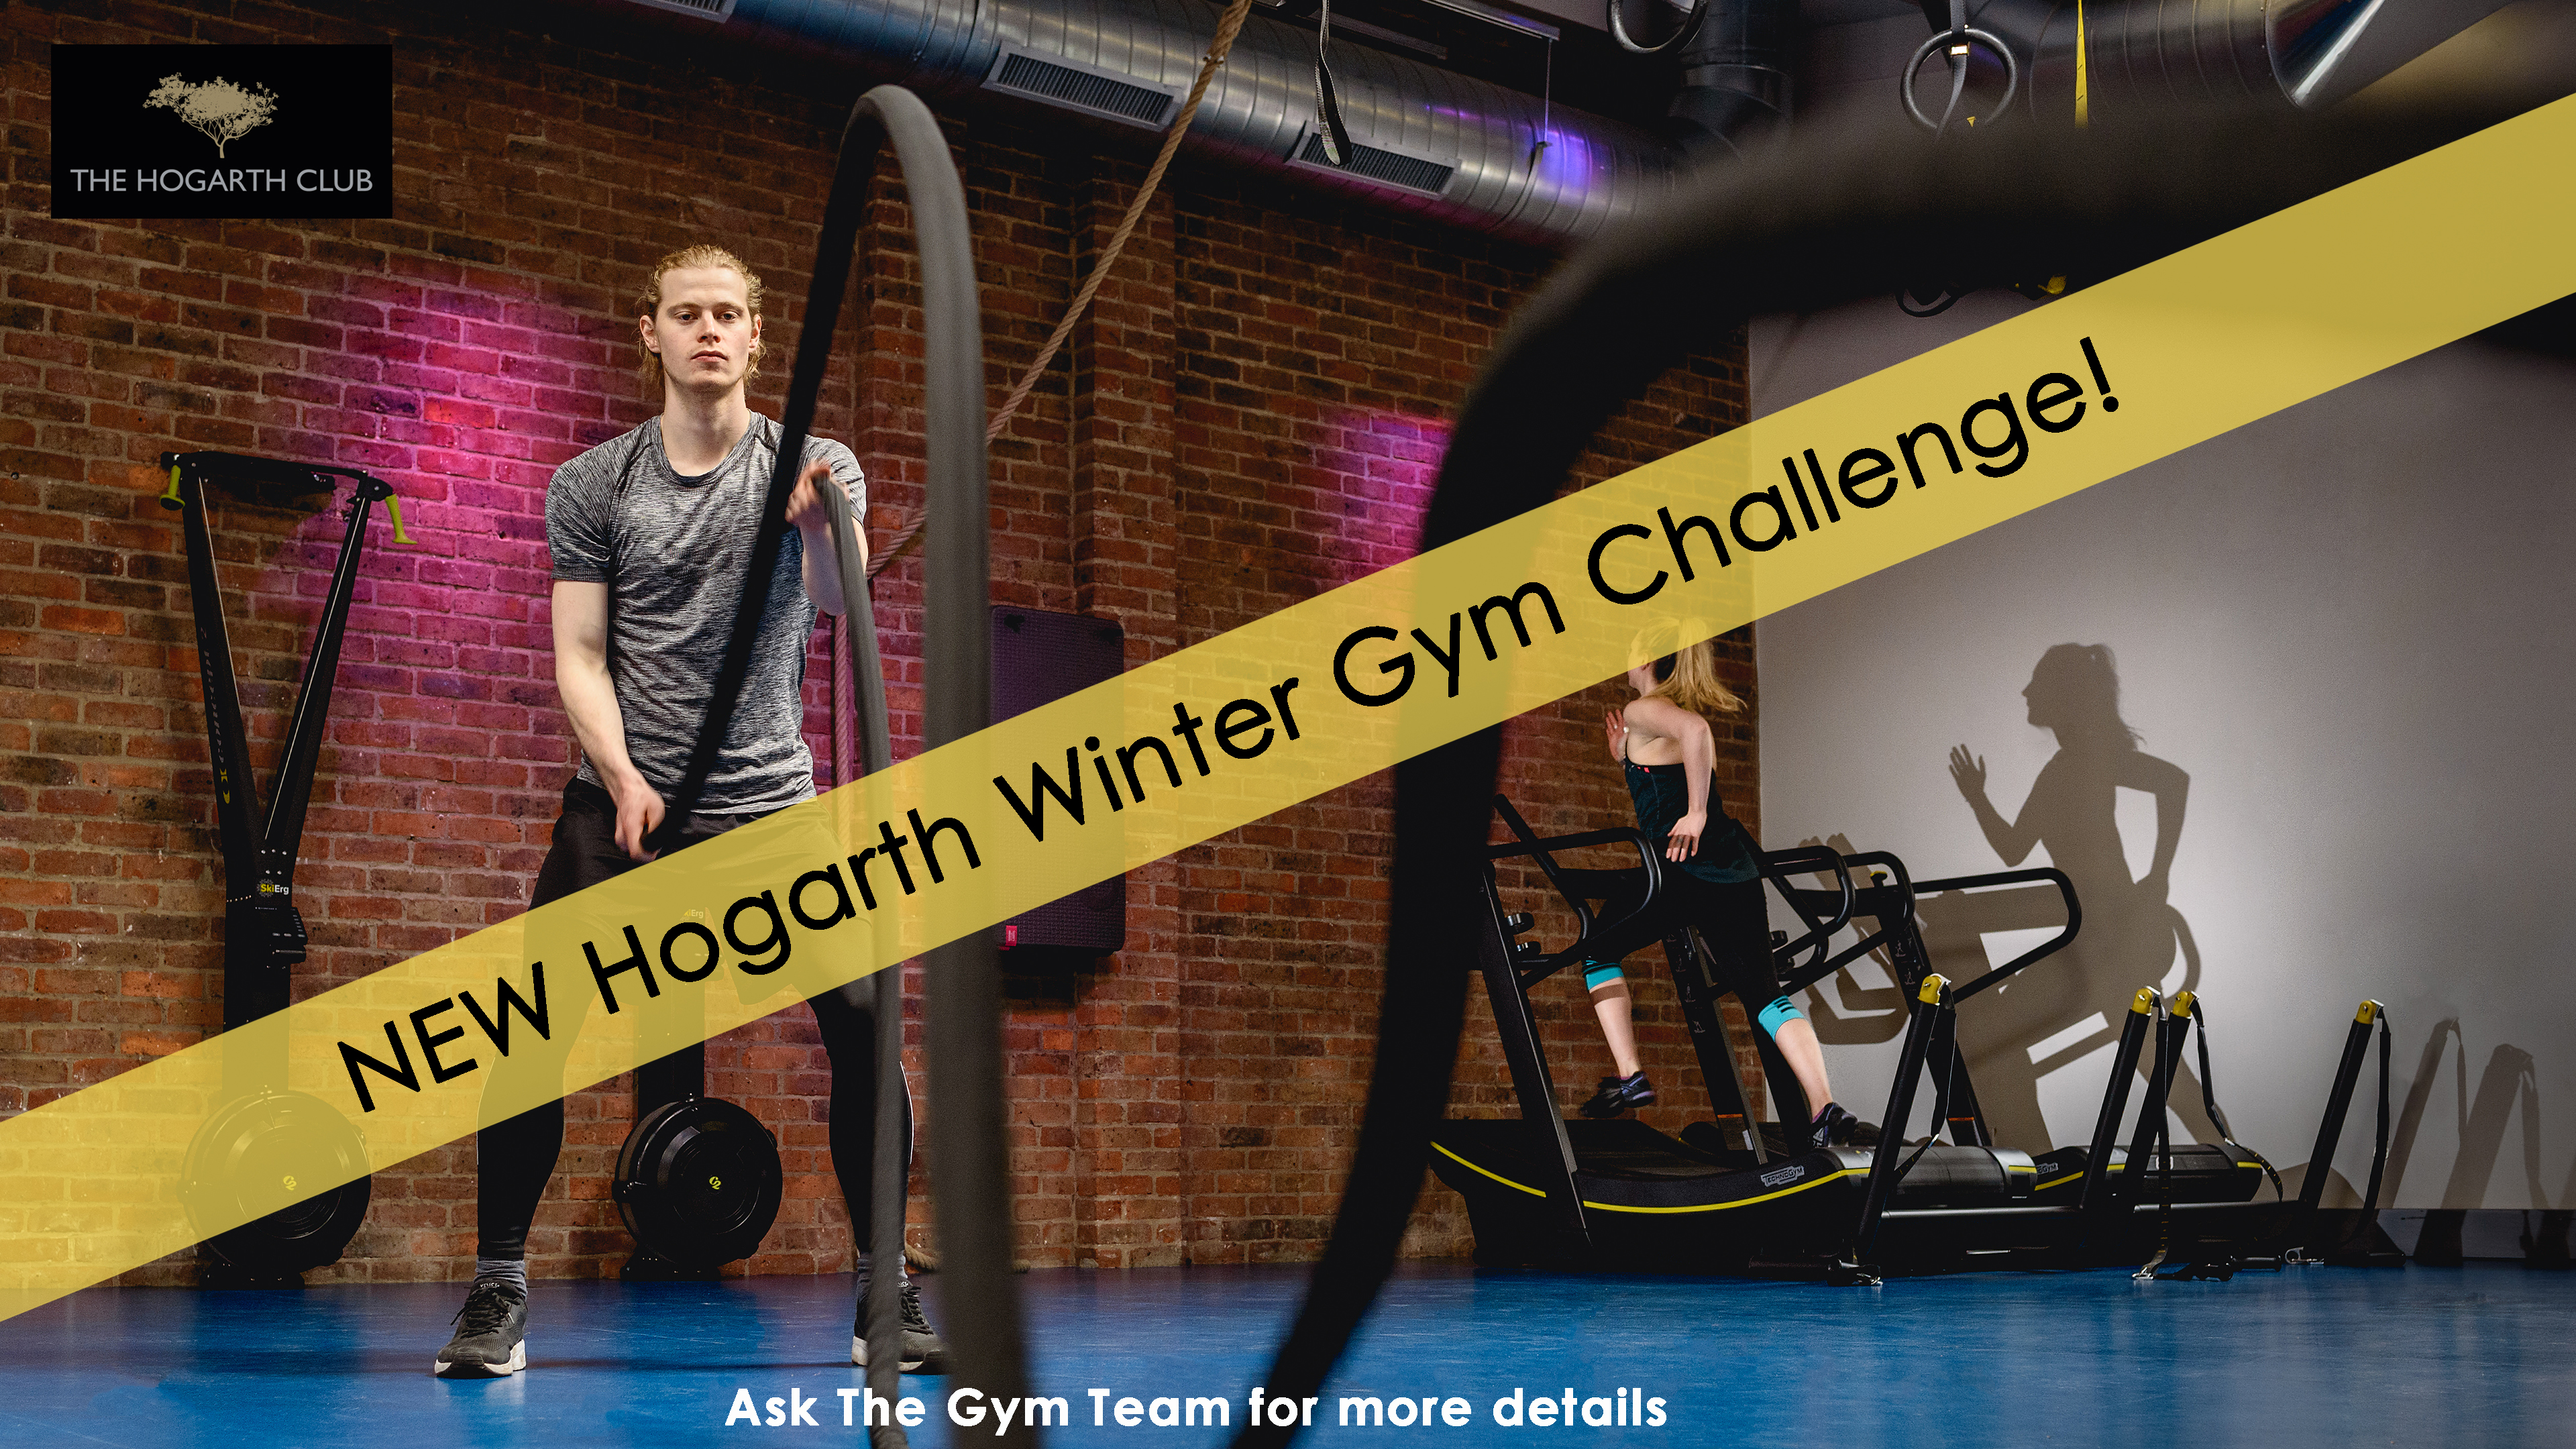 New Hogarth HIIT Winter Gym Challenge